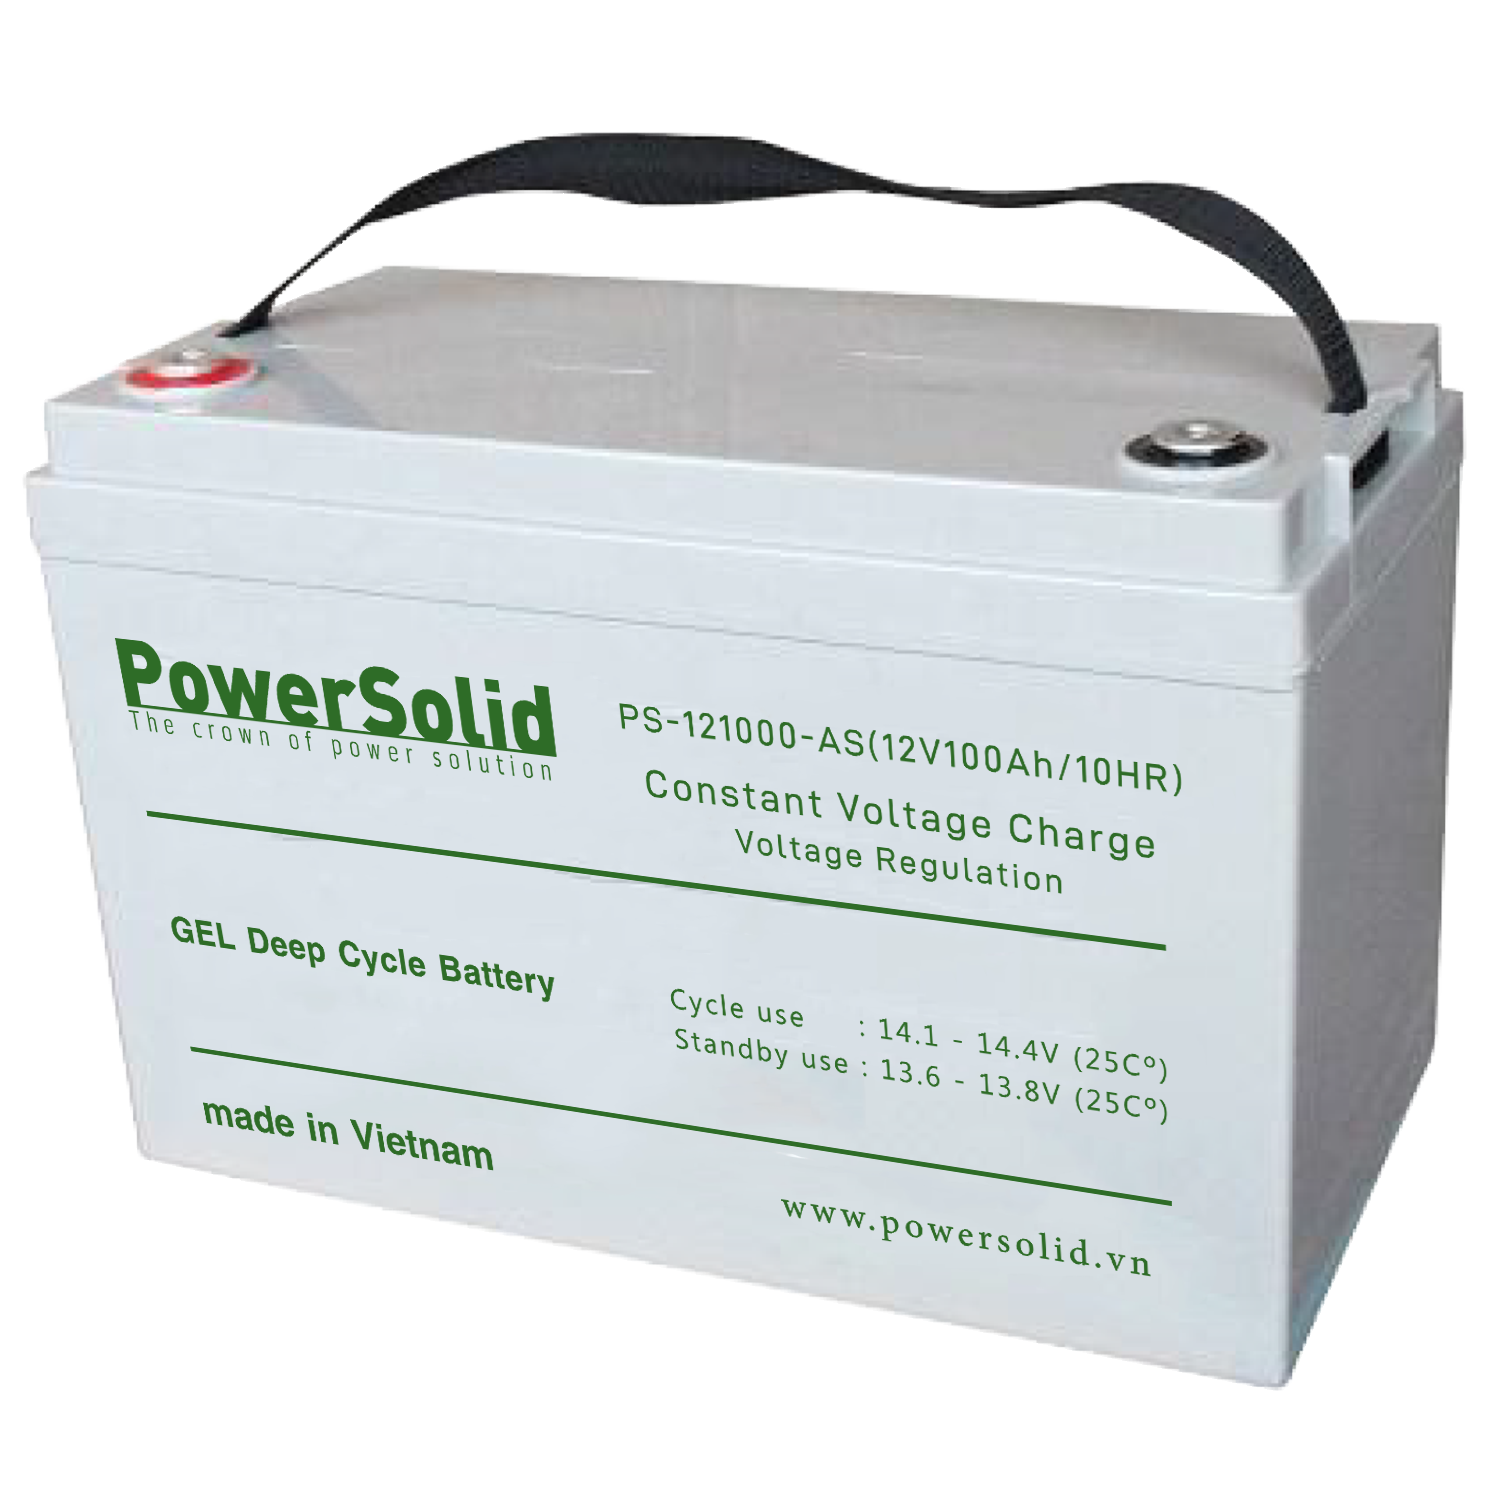 Power Solid PS-121000-GS GEL Deep Cycle Battery 12V 100Ah